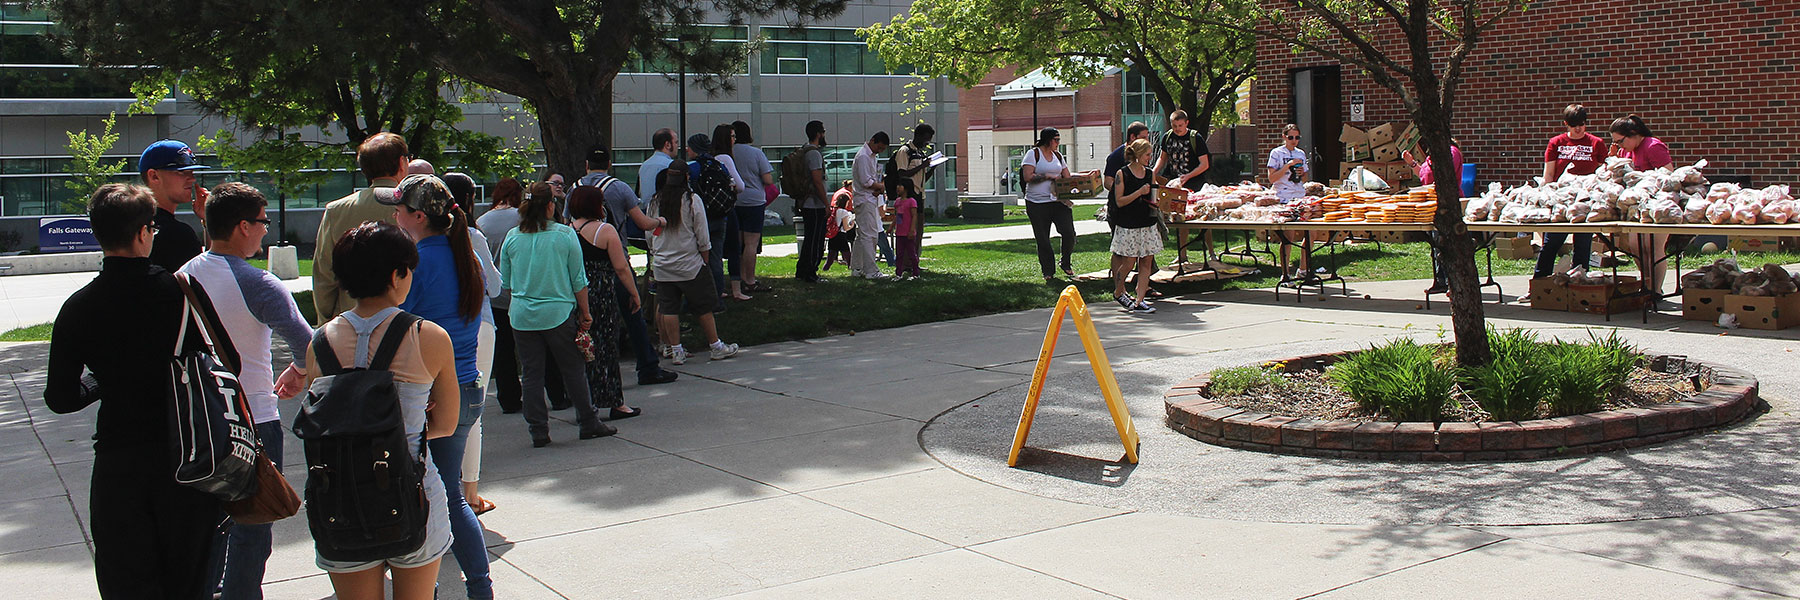 Students lined up outside farmers market on campus